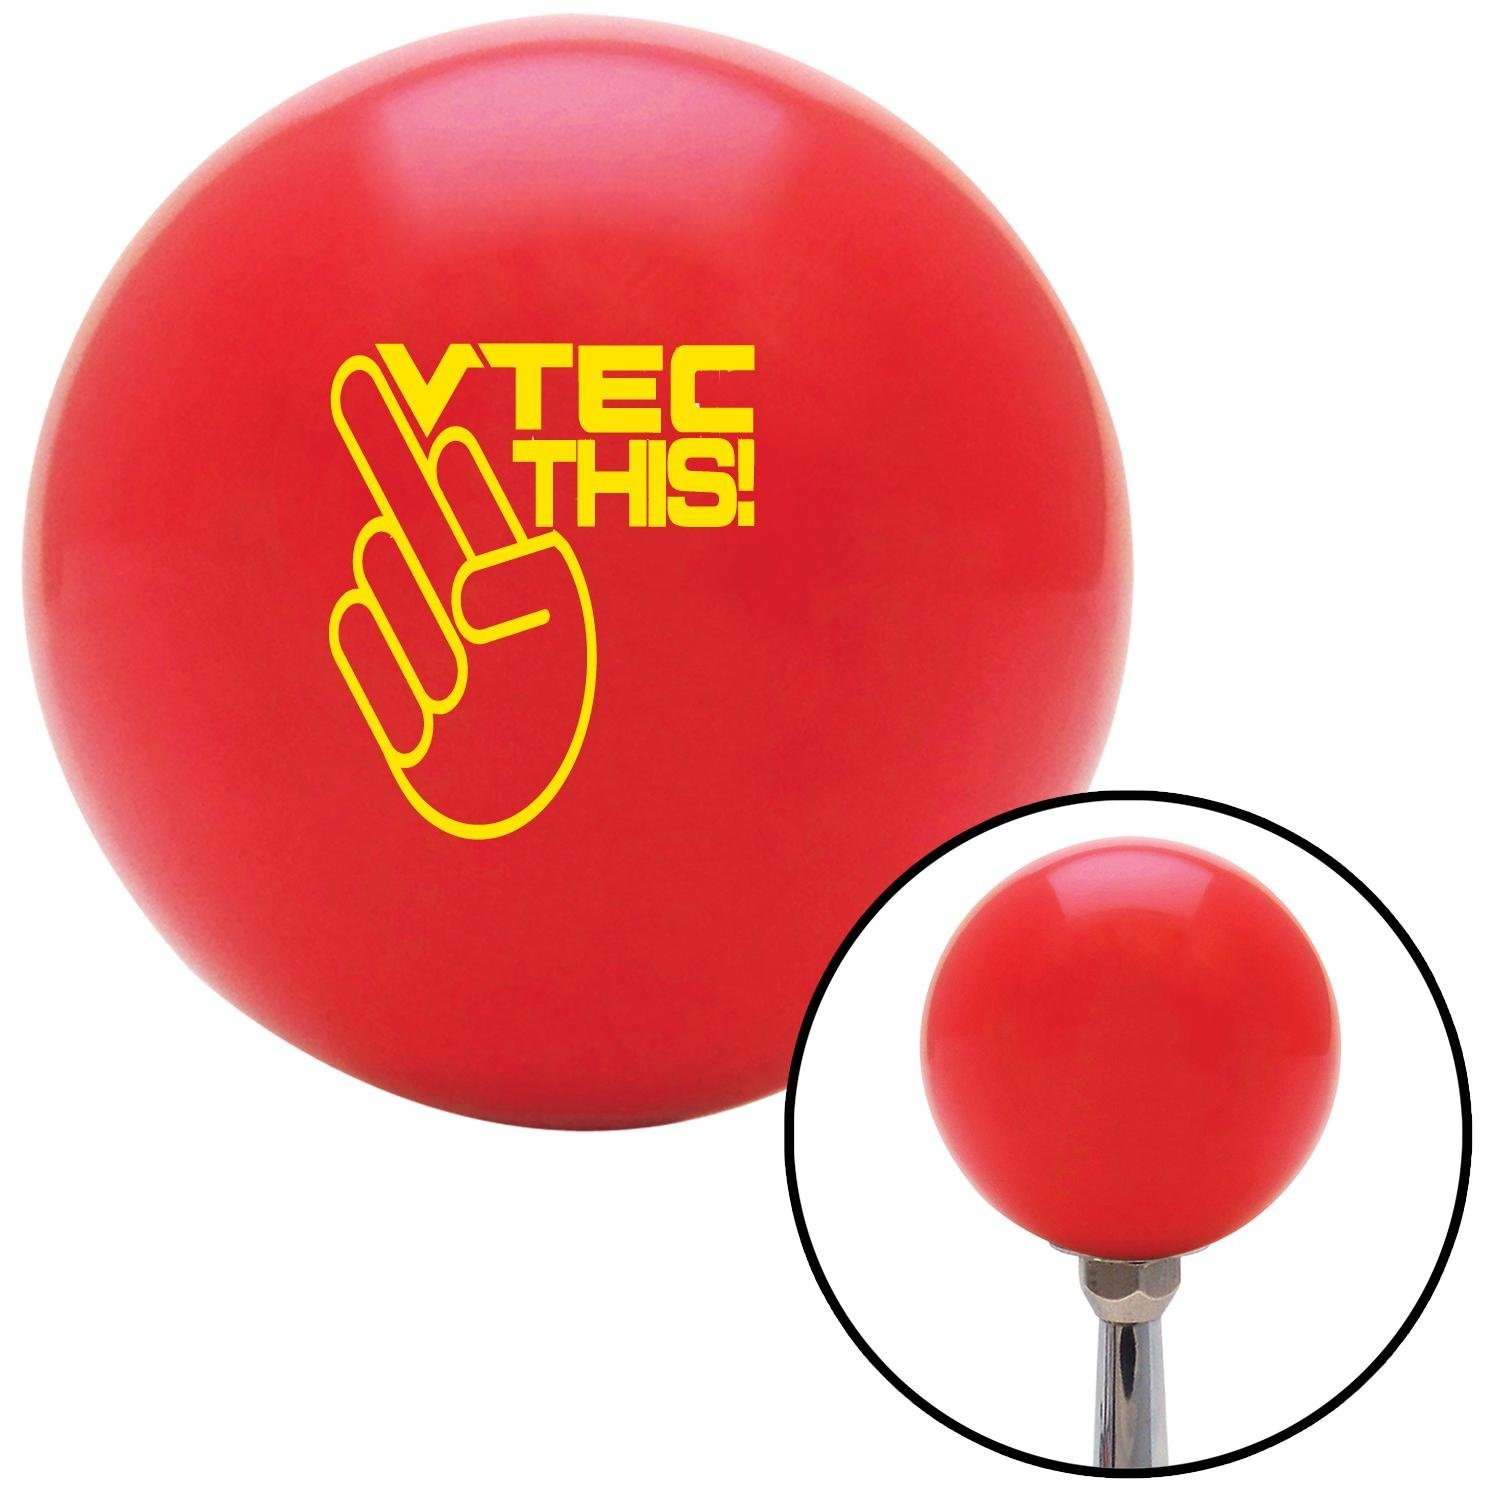 Yellow VTEC This! American Shifter 97354 Red Shift Knob with M16 x 1.5 Insert